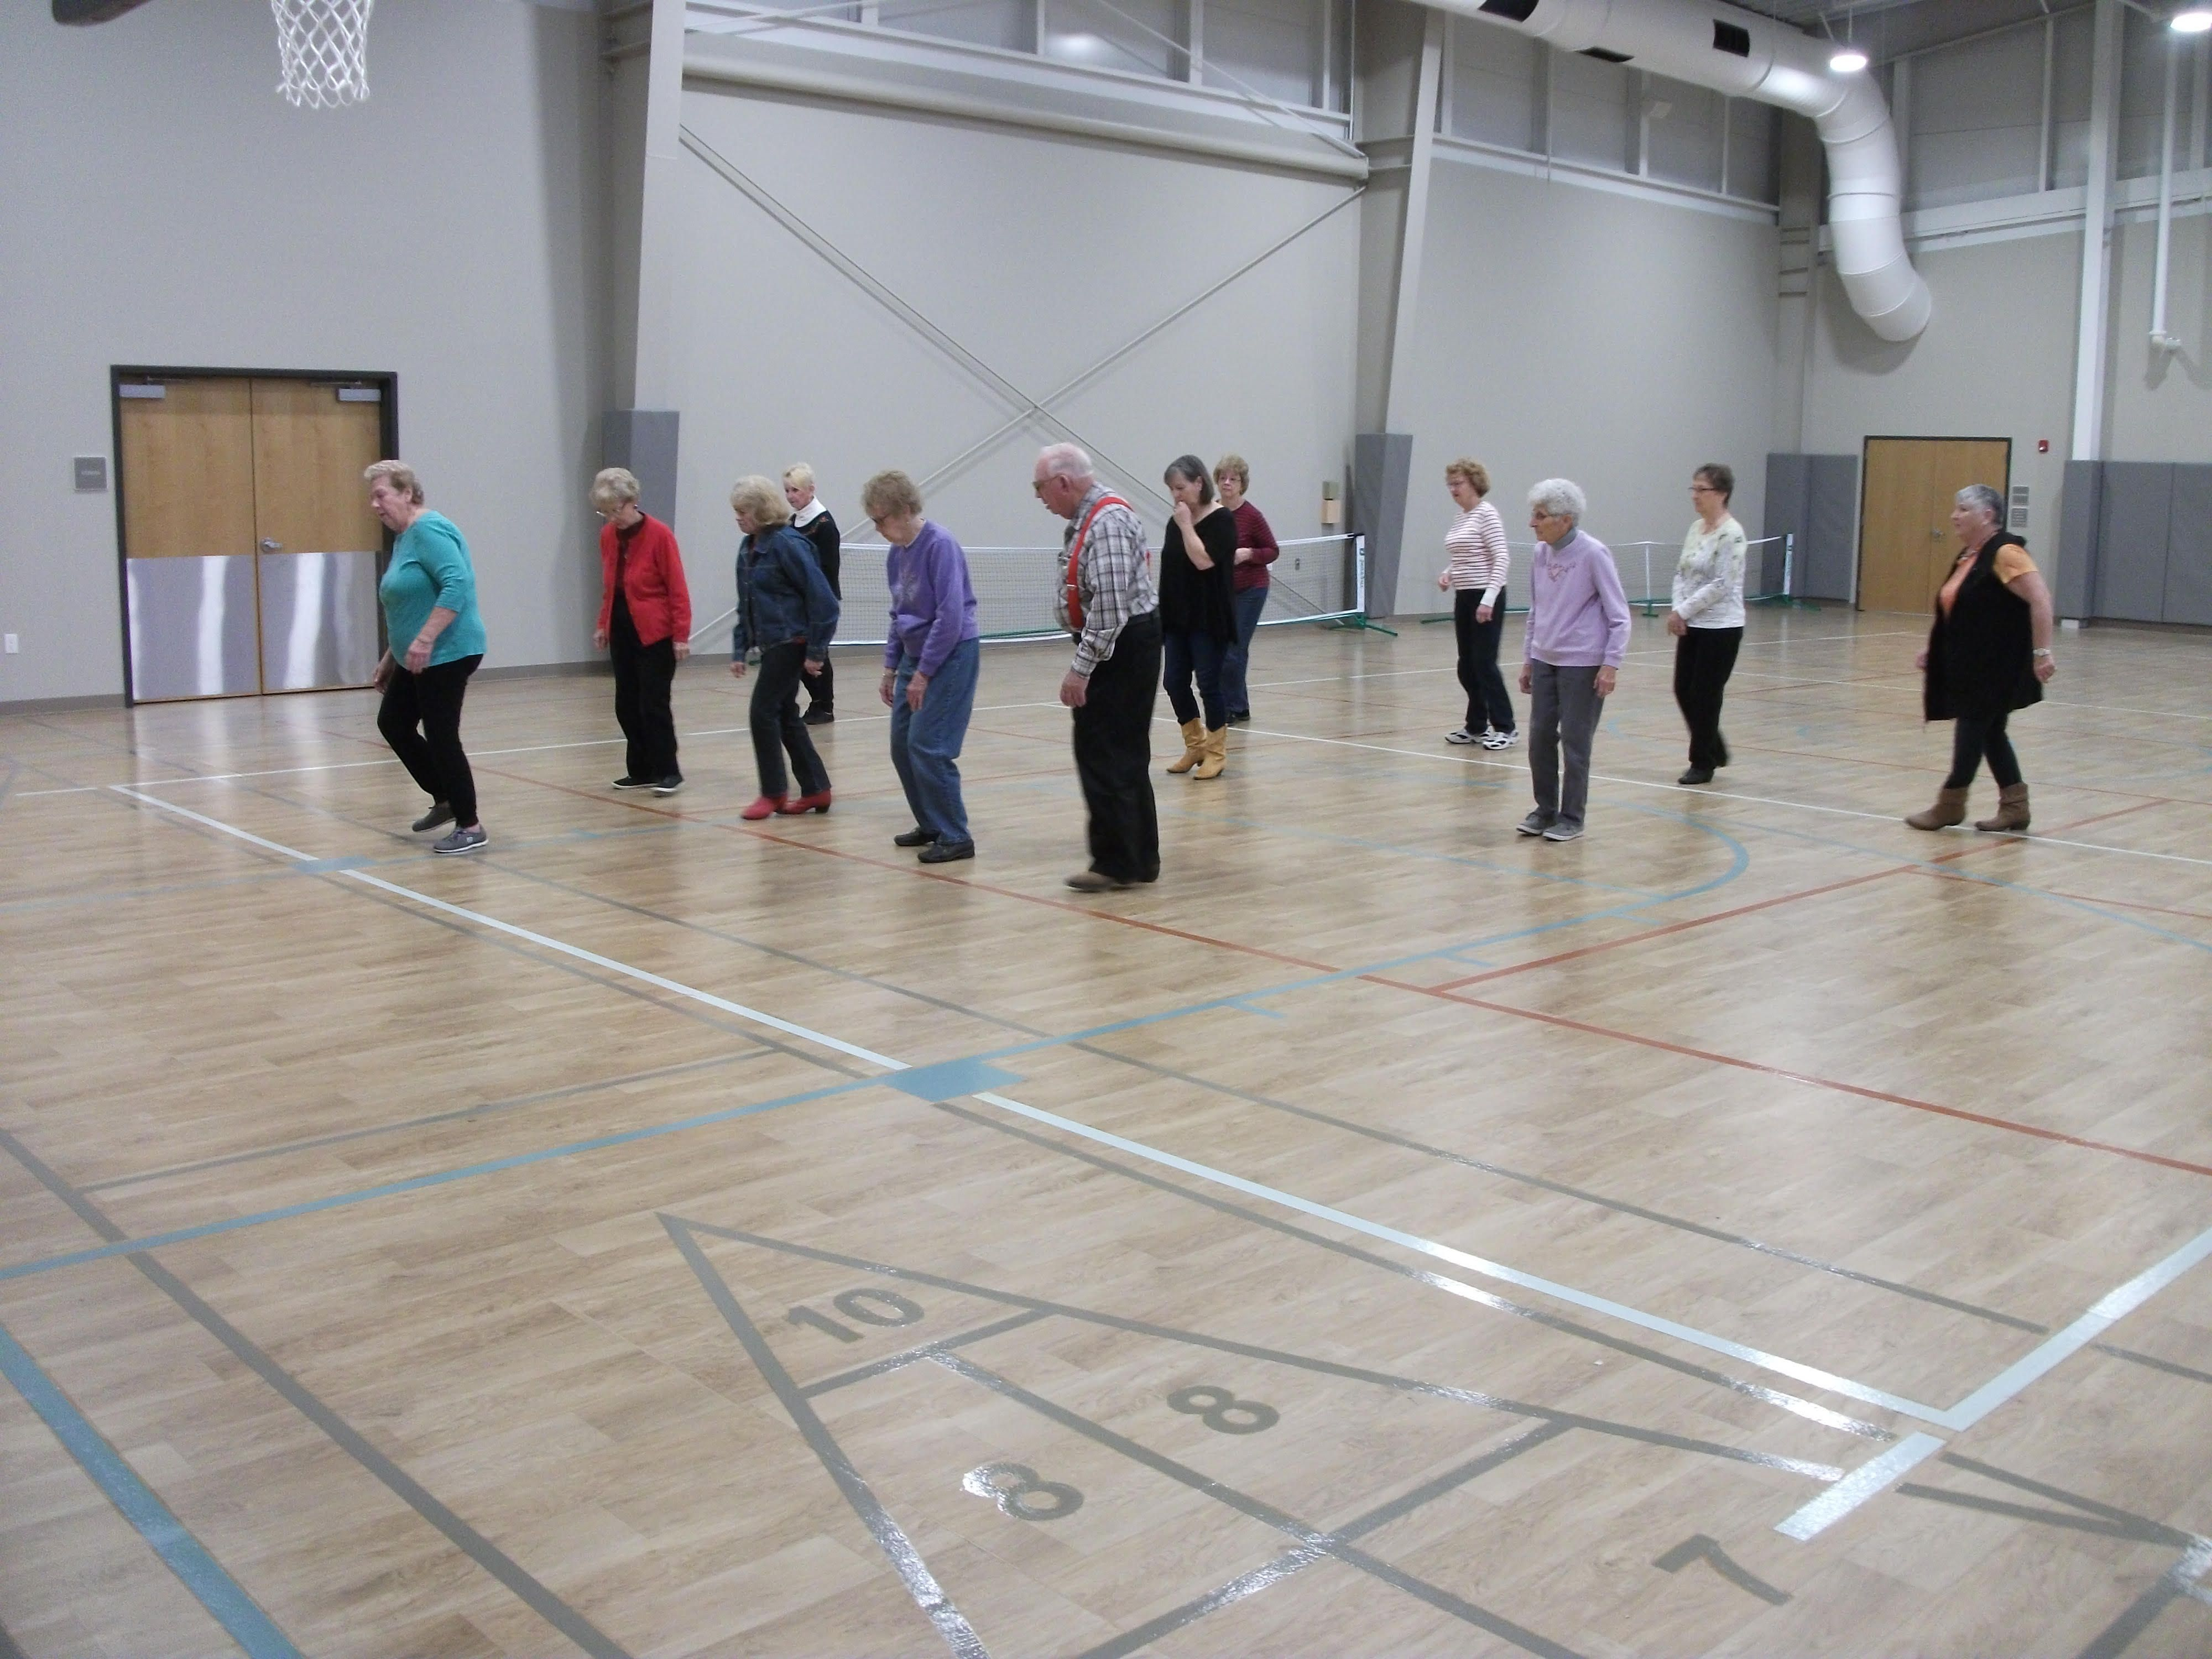 Line dancing exercise